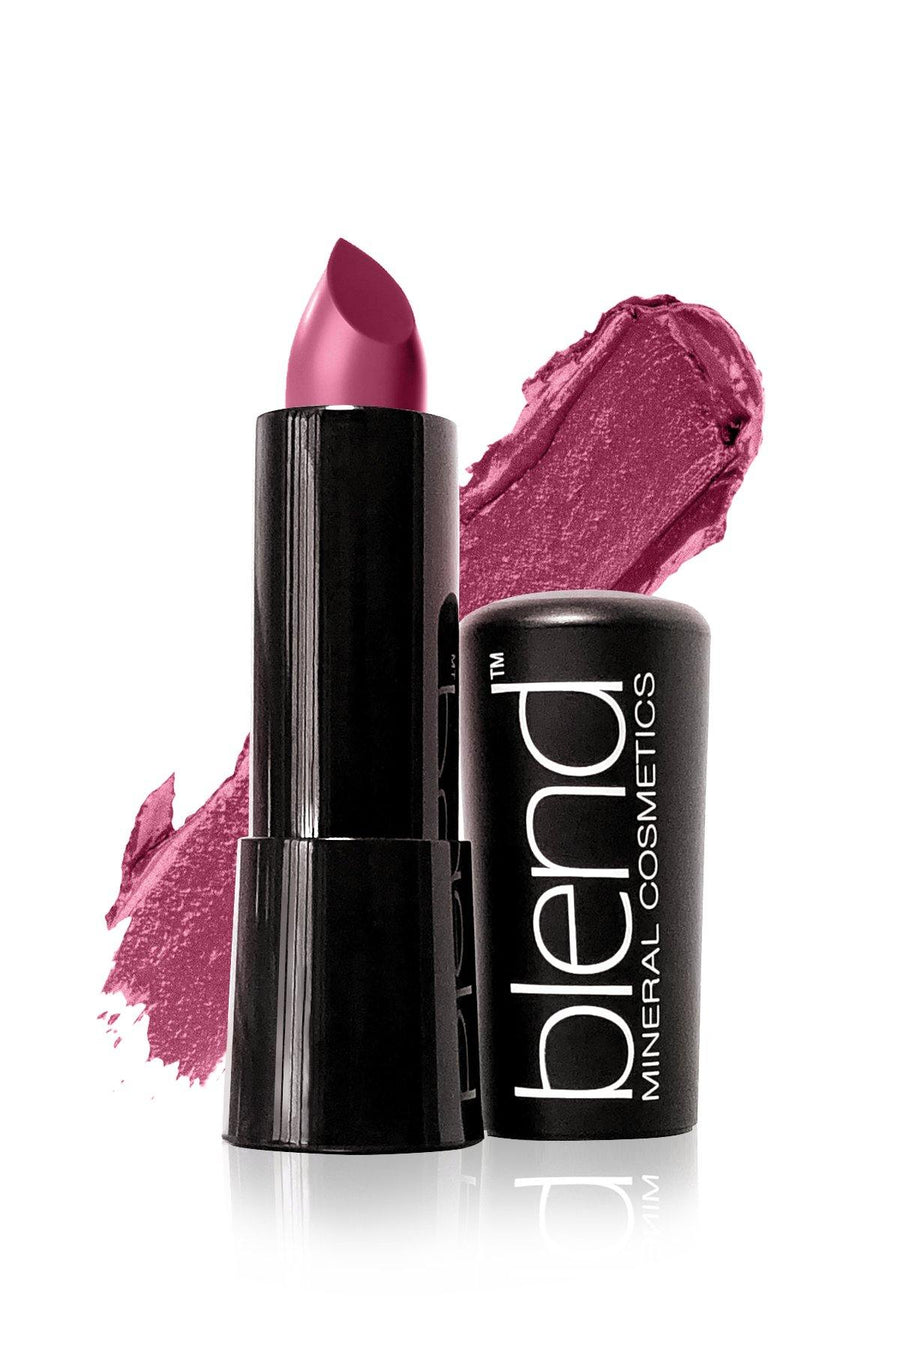 Lipstick #13 - Deep Purple - Blend Mineral Cosmetics